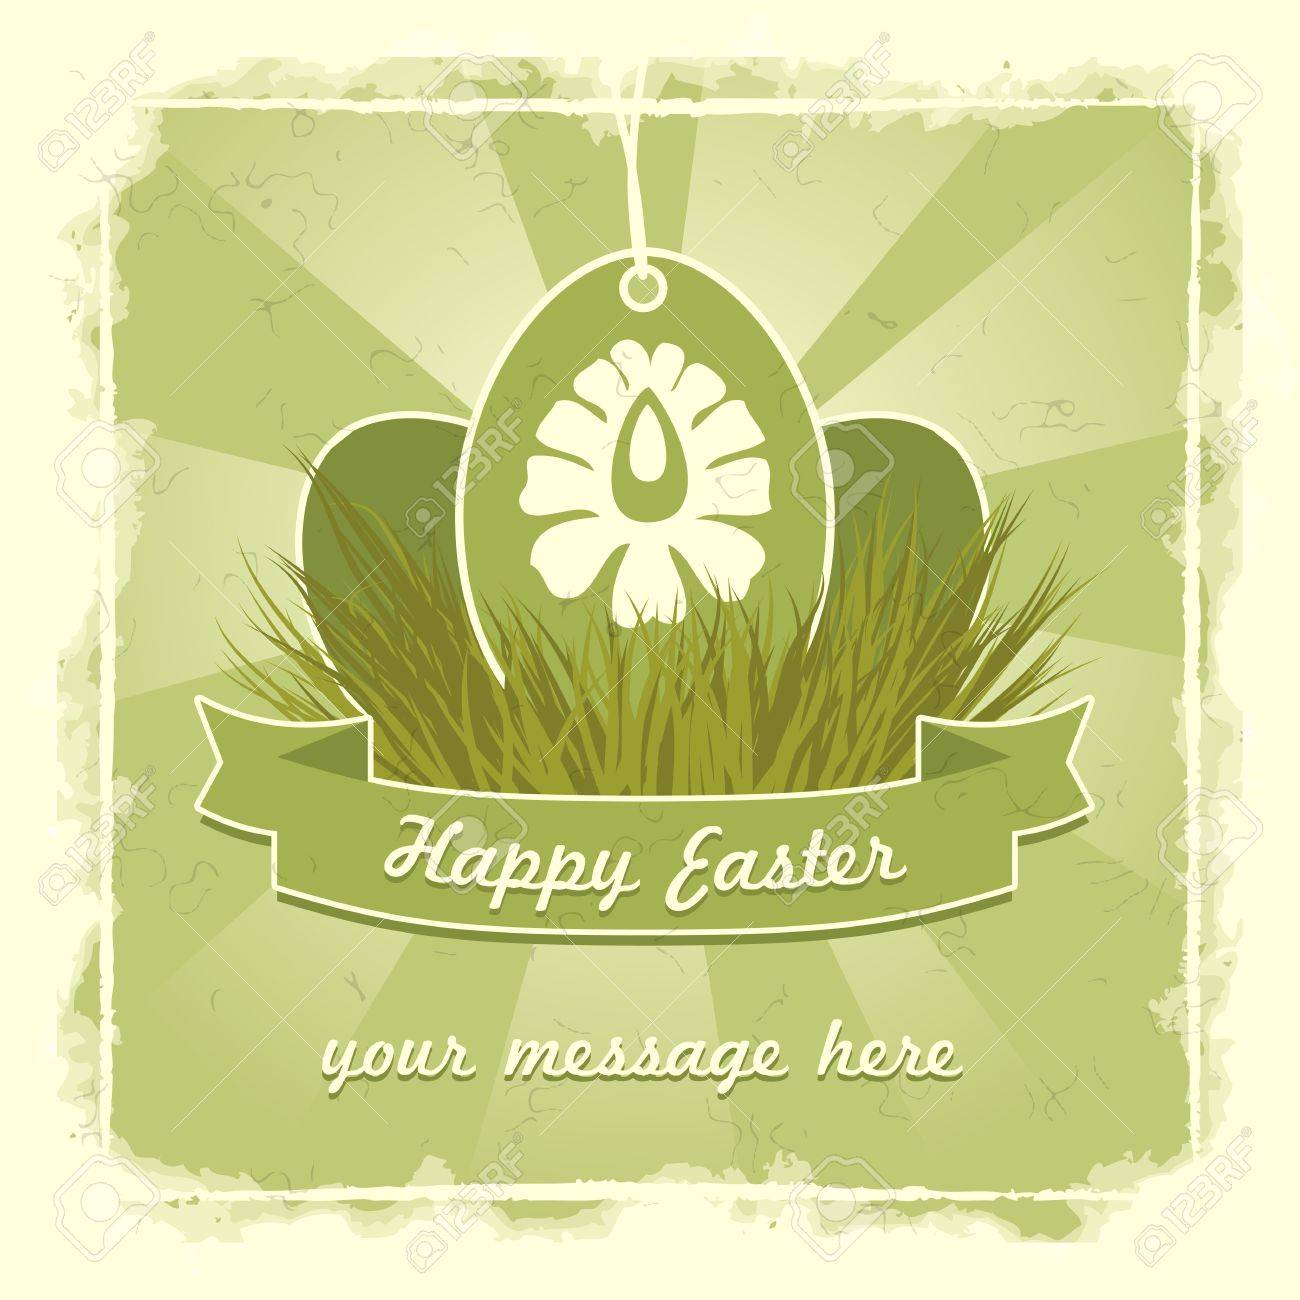 Old classic easter eggs card with traditional flower symbol. Stock Vector - 17414292